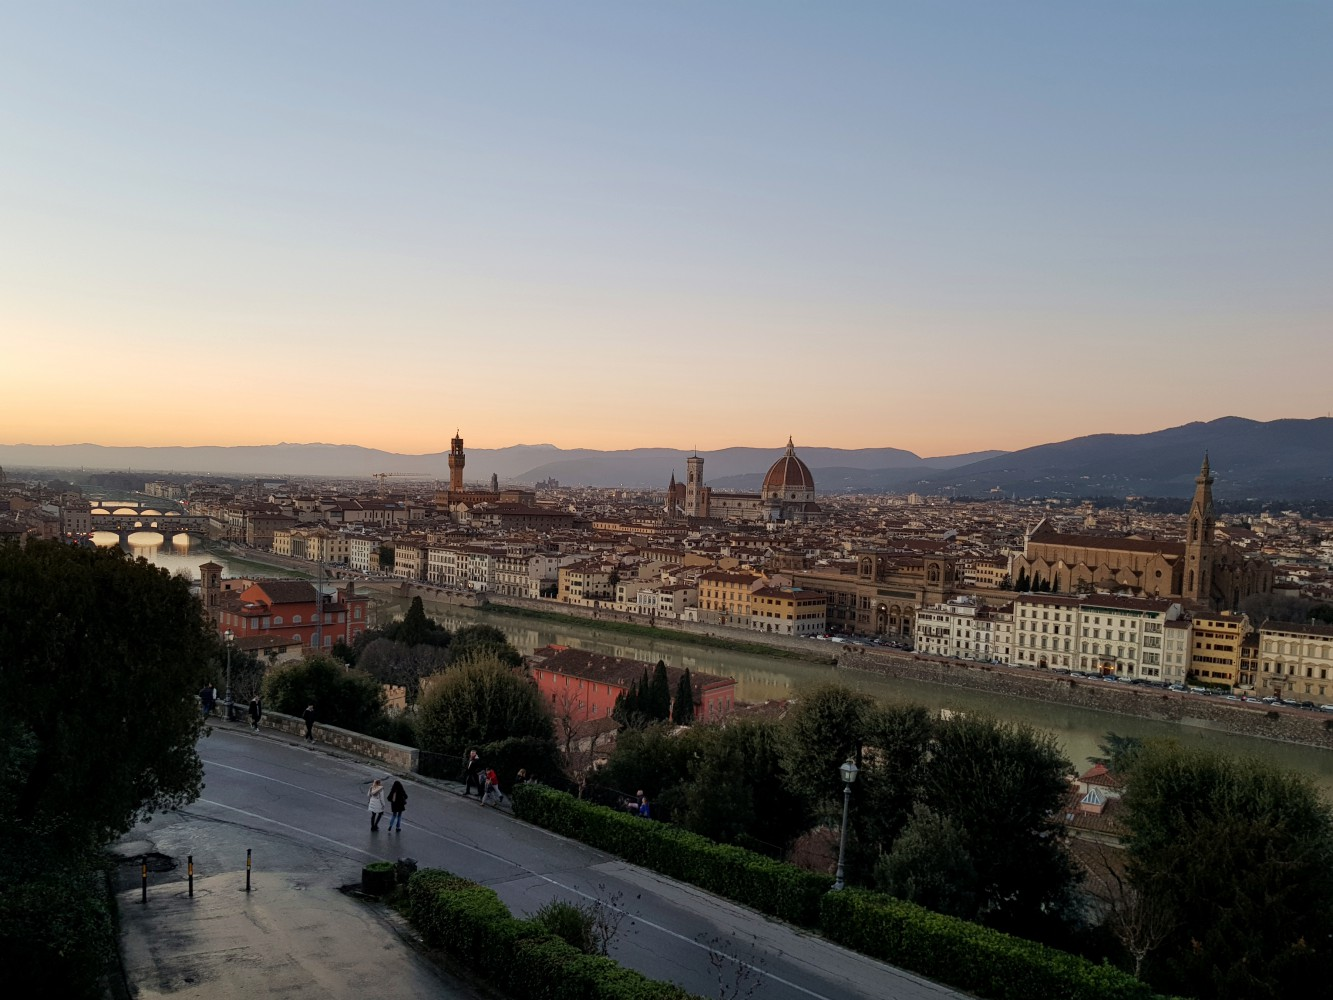 PIAZZALE MICHELANGELO AT SUNSET